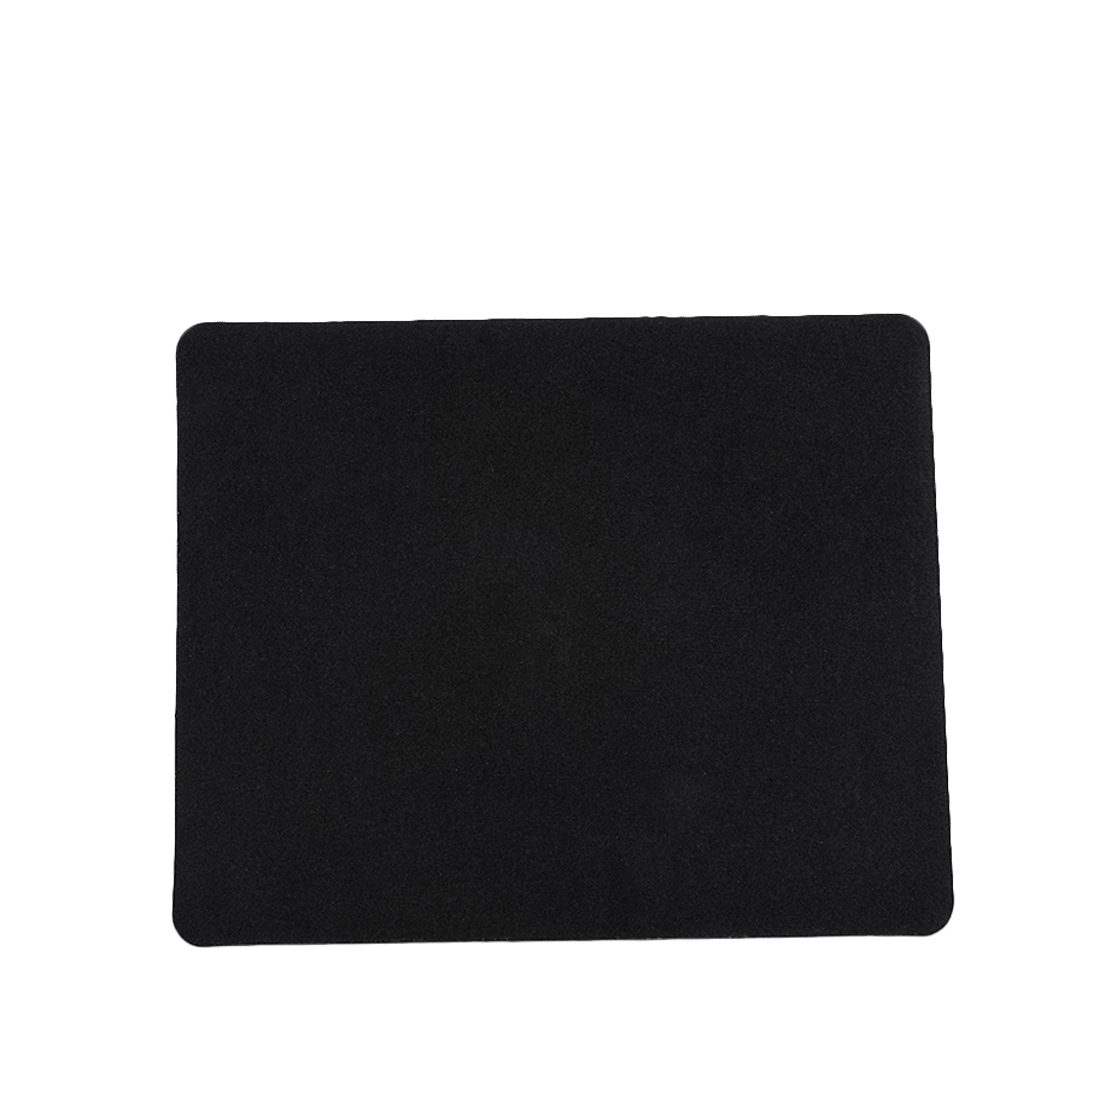 NOYOKERE New Arrival Super Feel Durable Polyester Handstands Small Mouse Pad Mouse Mat Black For Gamers